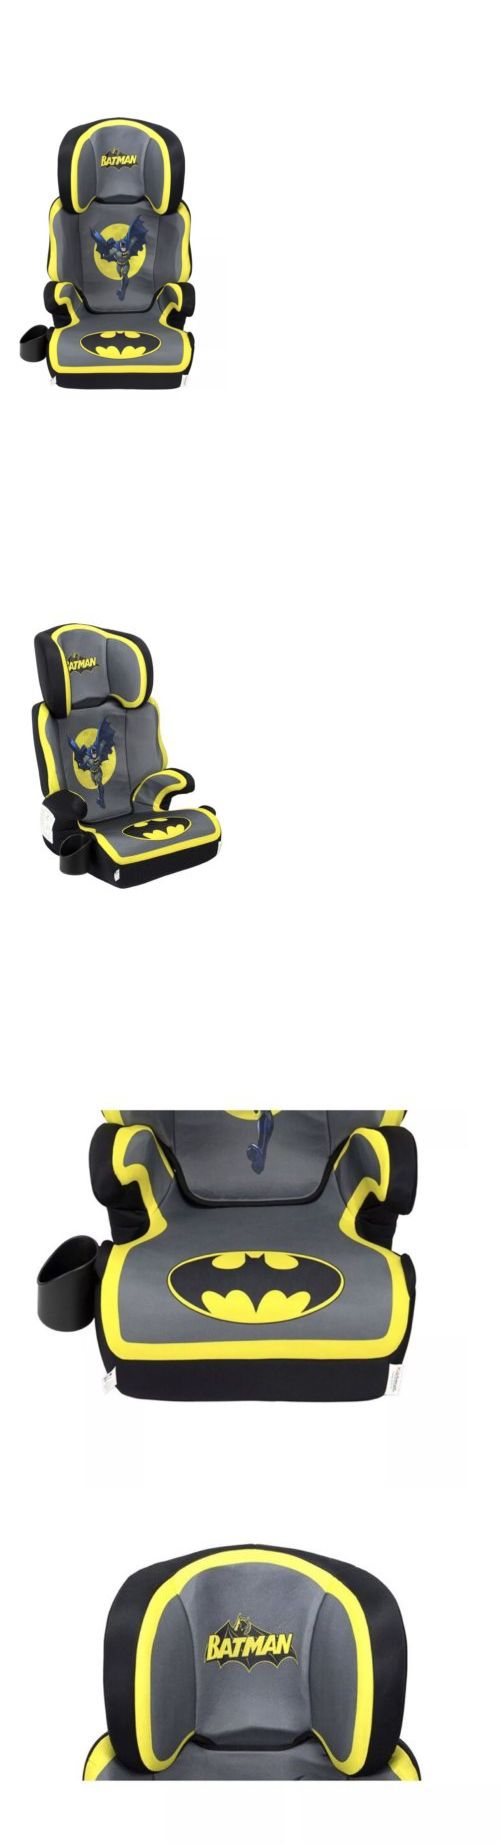 Other Car Safety Seats 2987 Kids Embrace Dc Comics Batman High Positioning Back Toddler Booster Seat BUY IT NOW ONLY 7999 On EBay